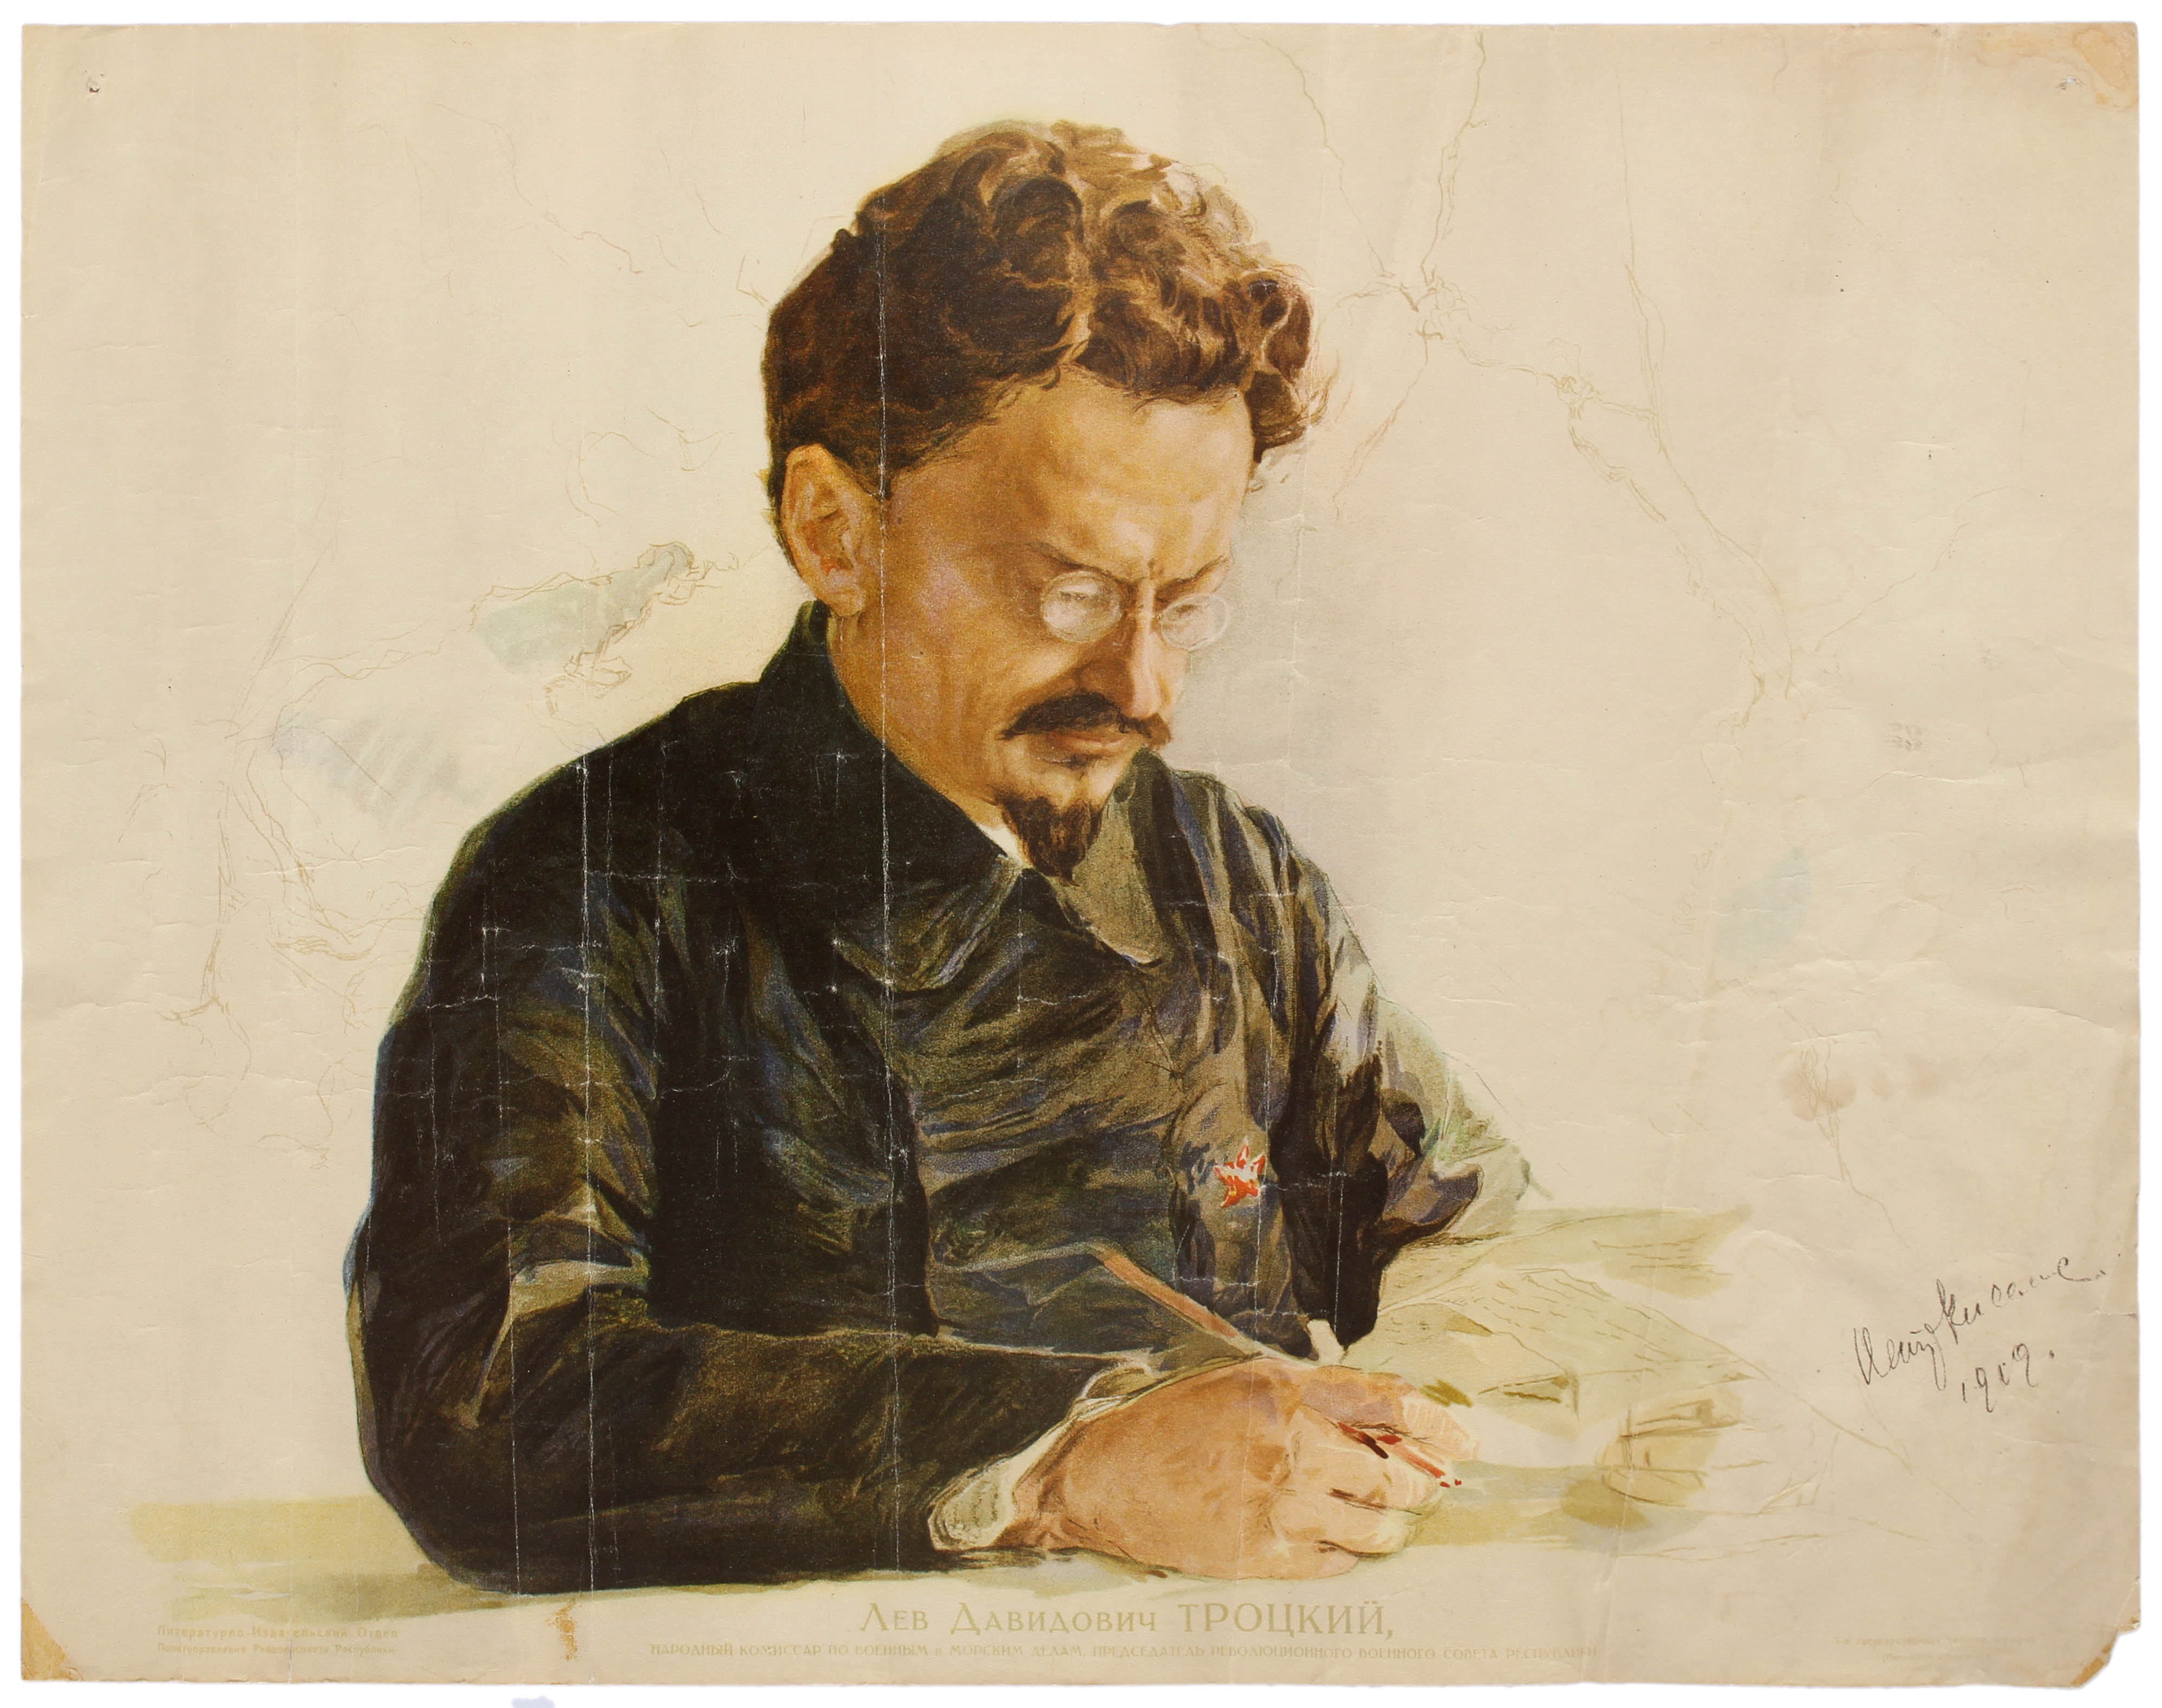 Lot 1 - Propaganda Poster The Work of Leon Trotsky